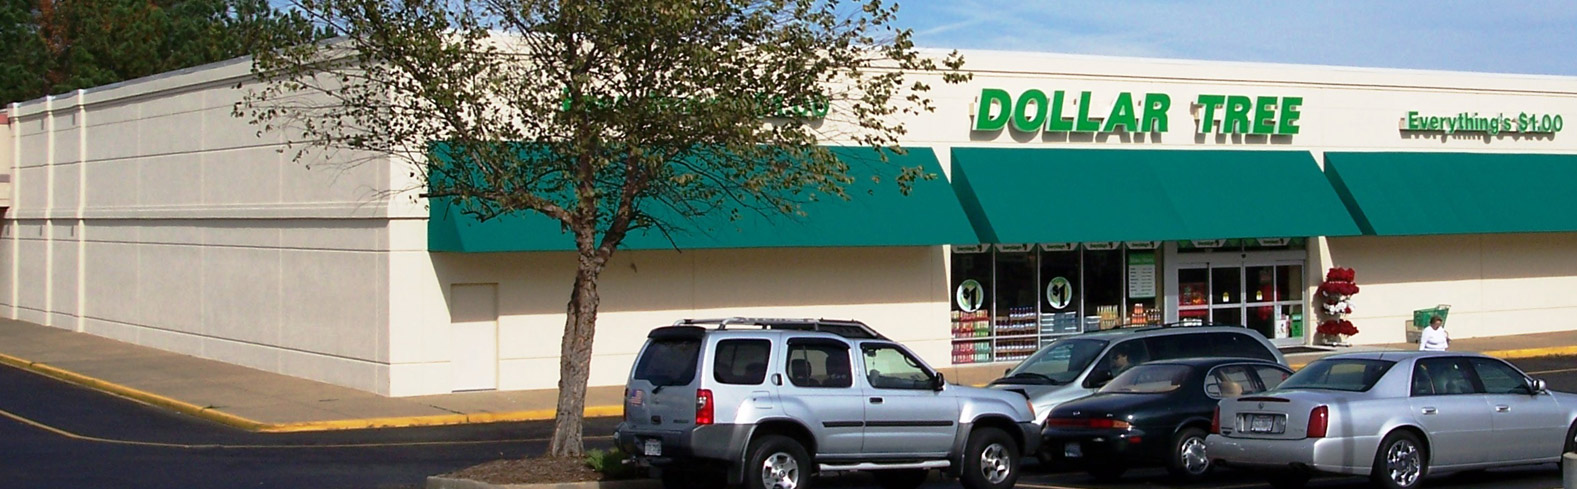 dollartree-main